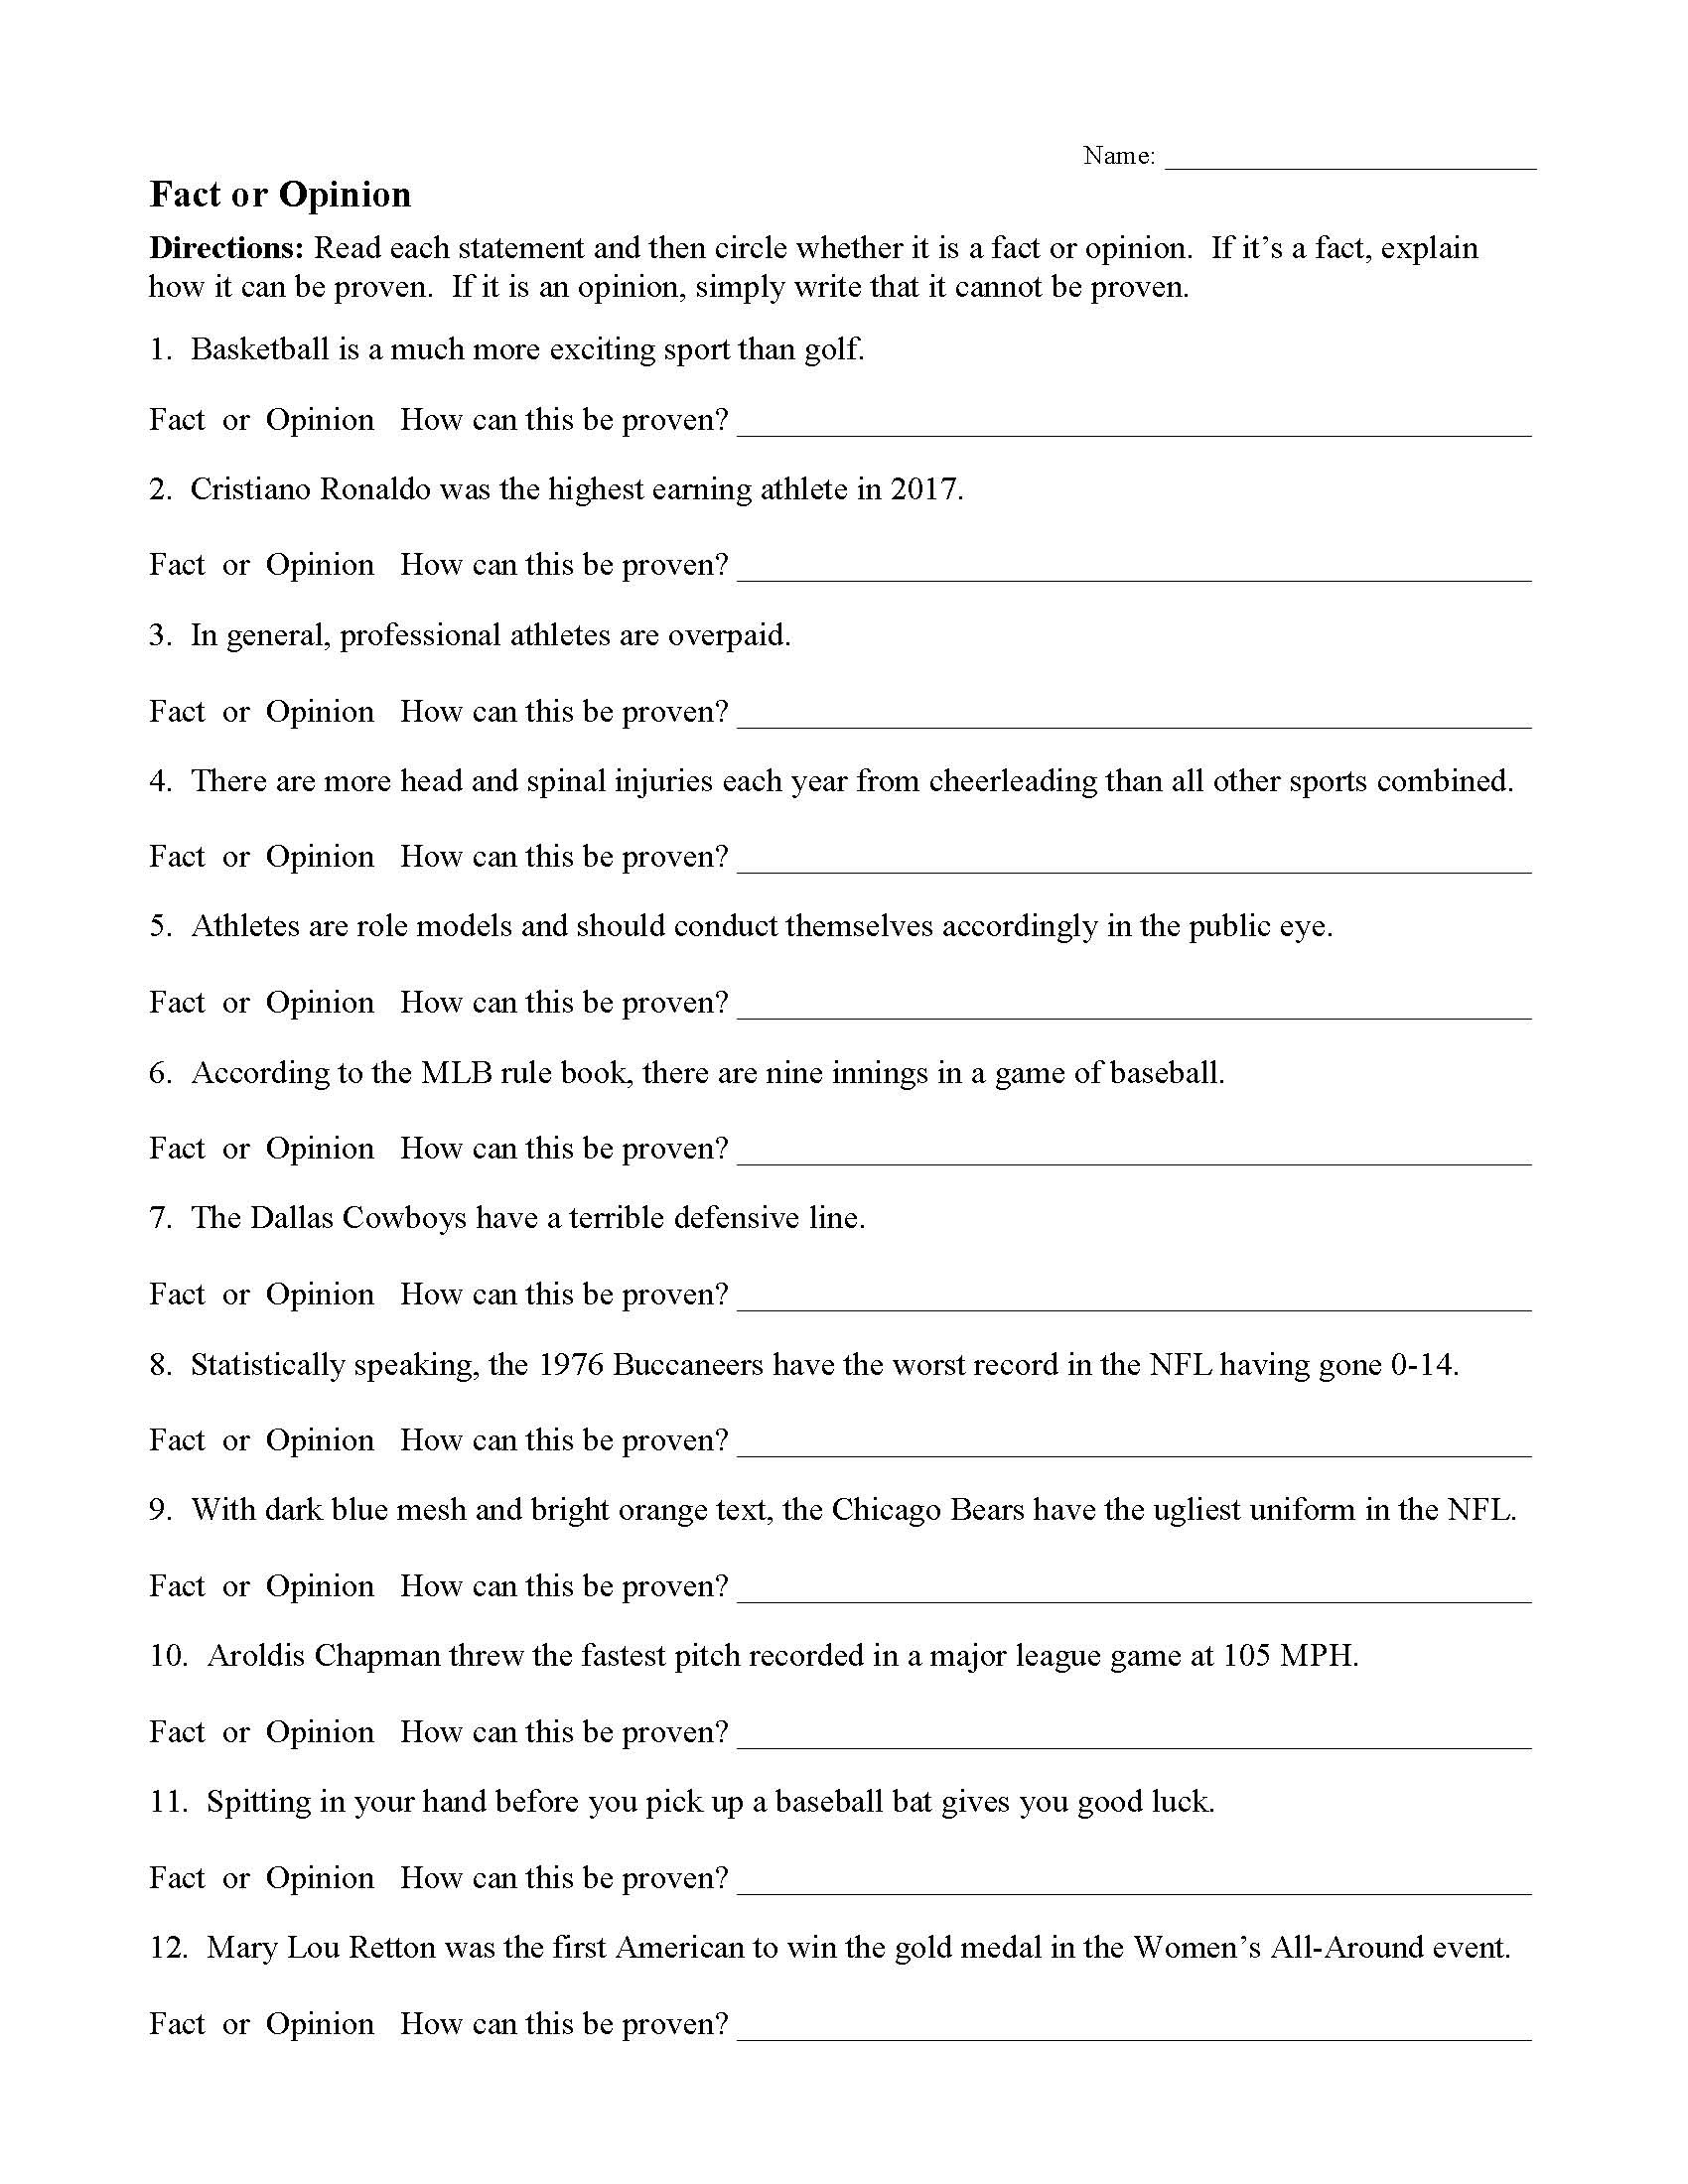 Fact Opinion Commonplace assertion Worksheet